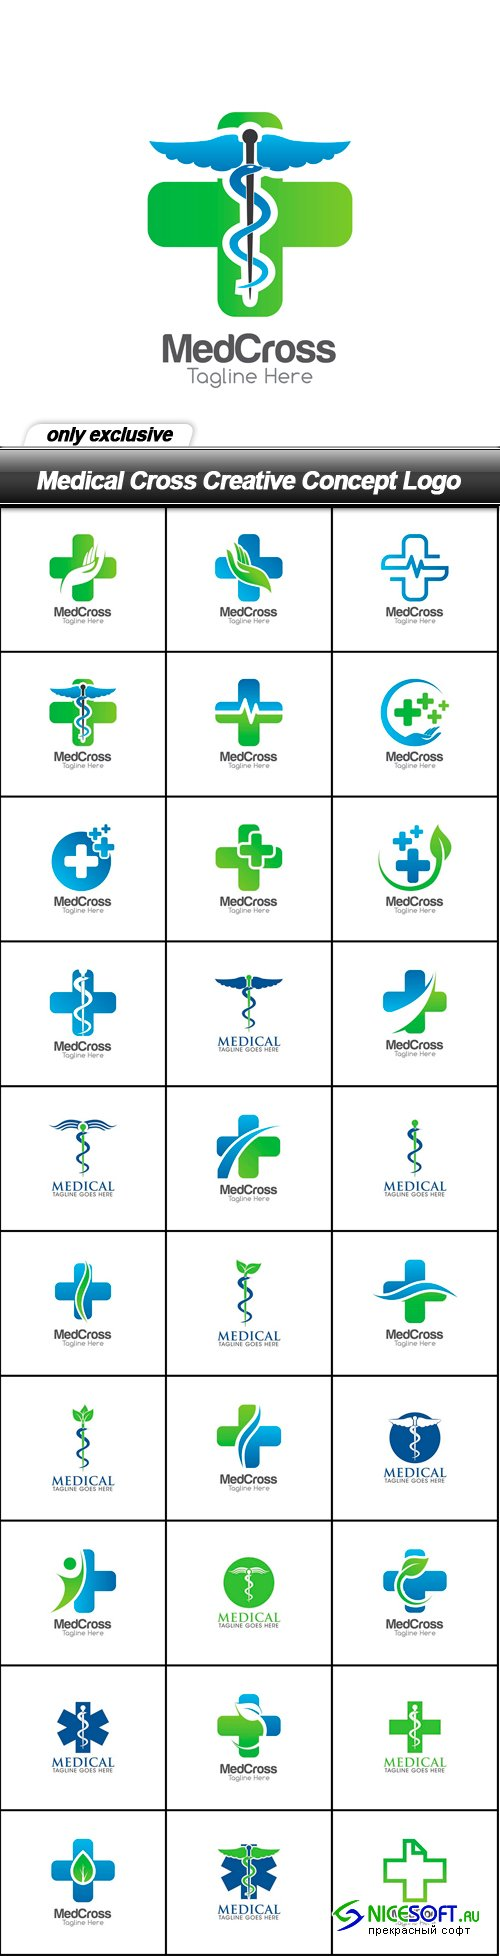 Medical Cross Creative Concept Logo